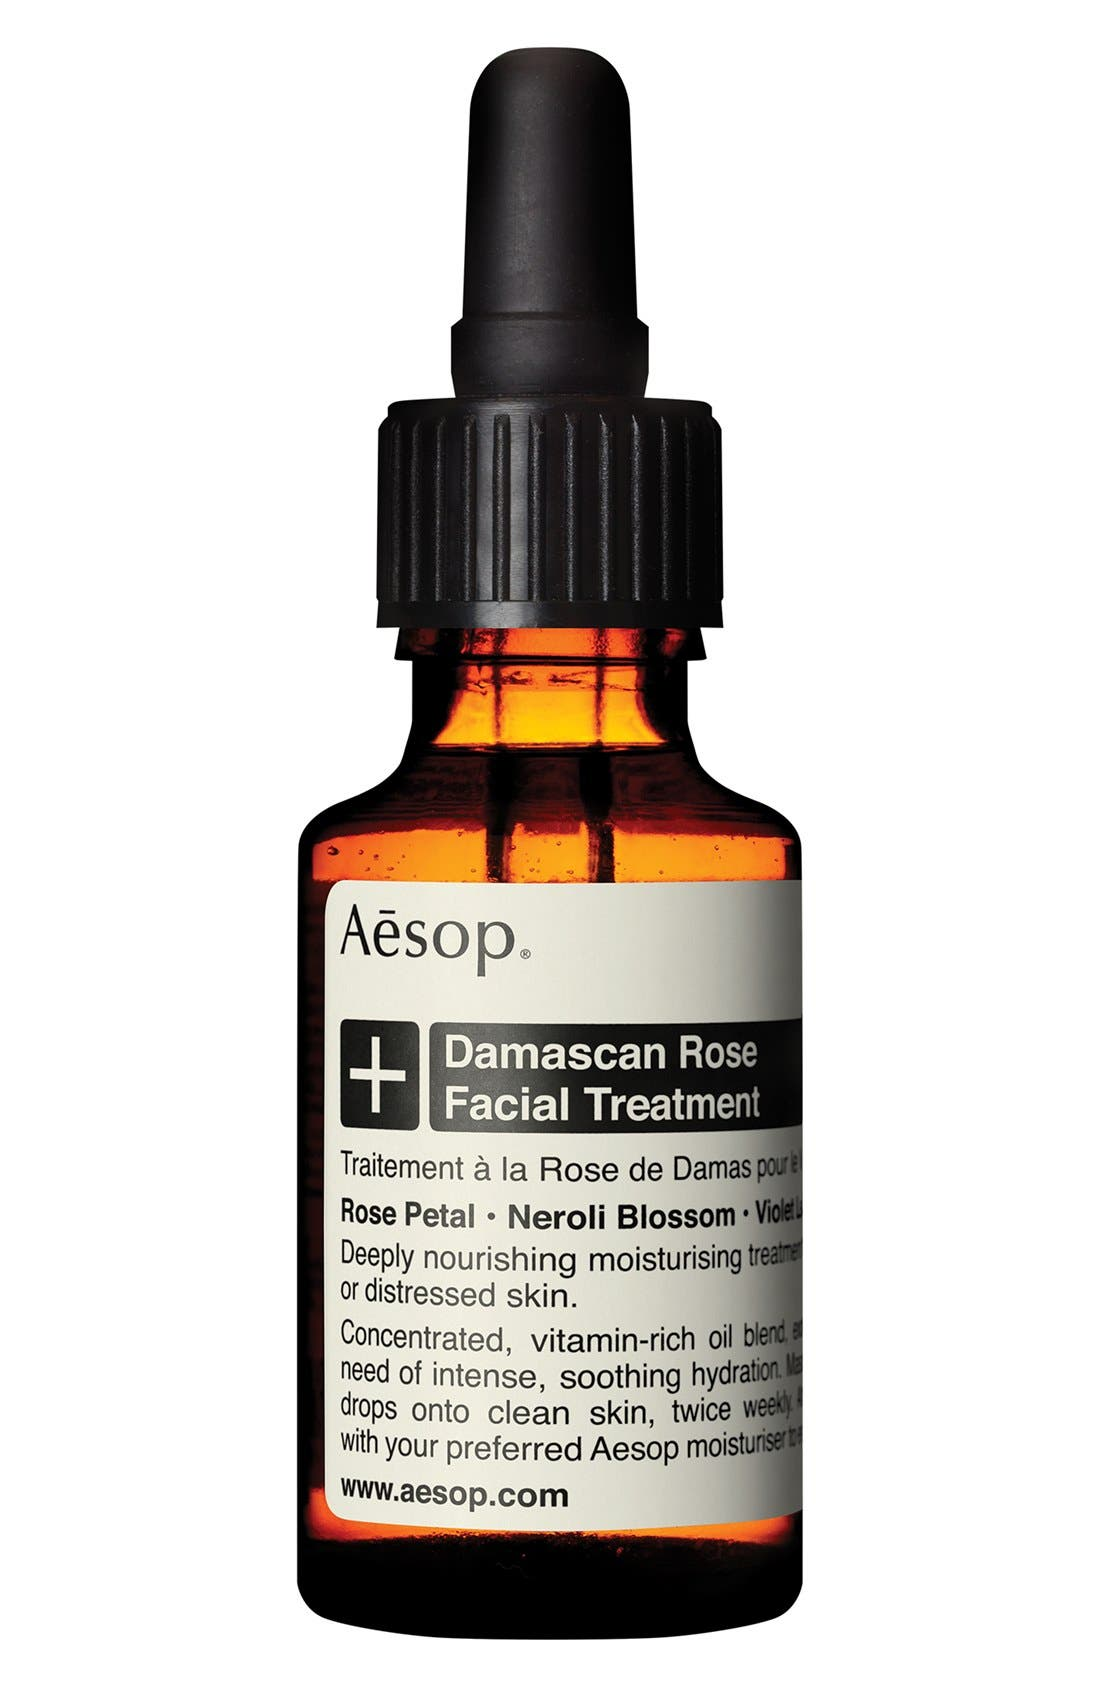 Aesop Damascan Rose Facial Treatment